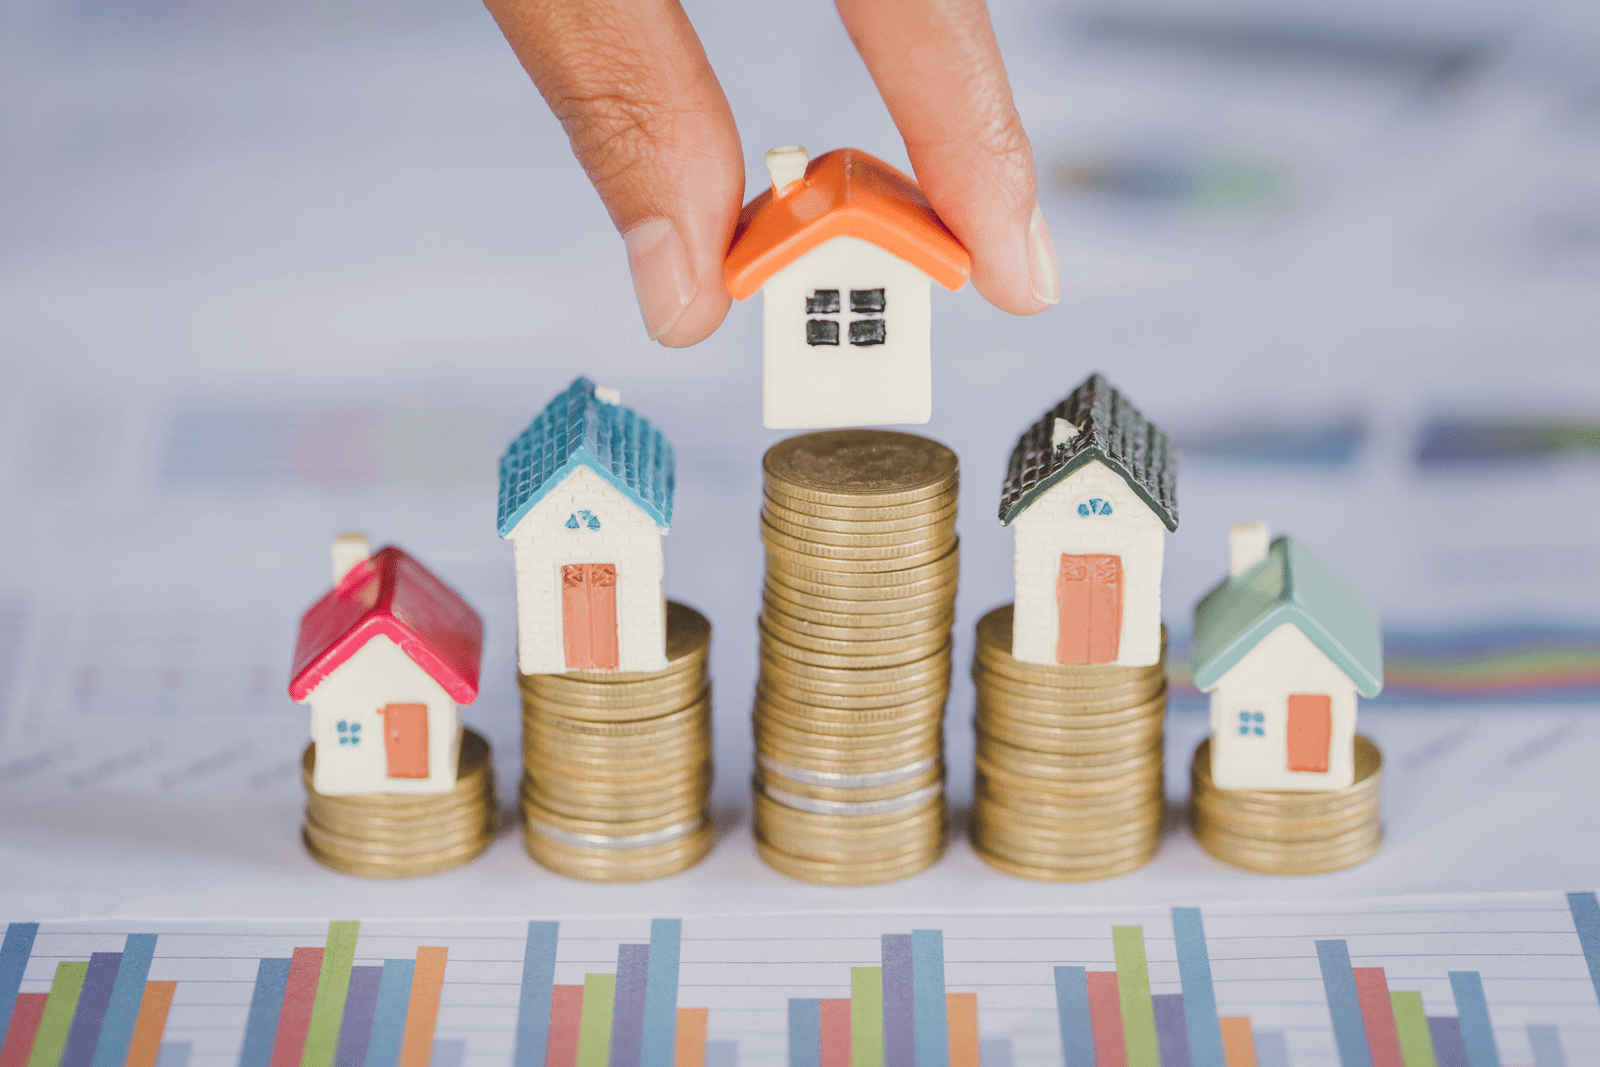 What's driving property prices?